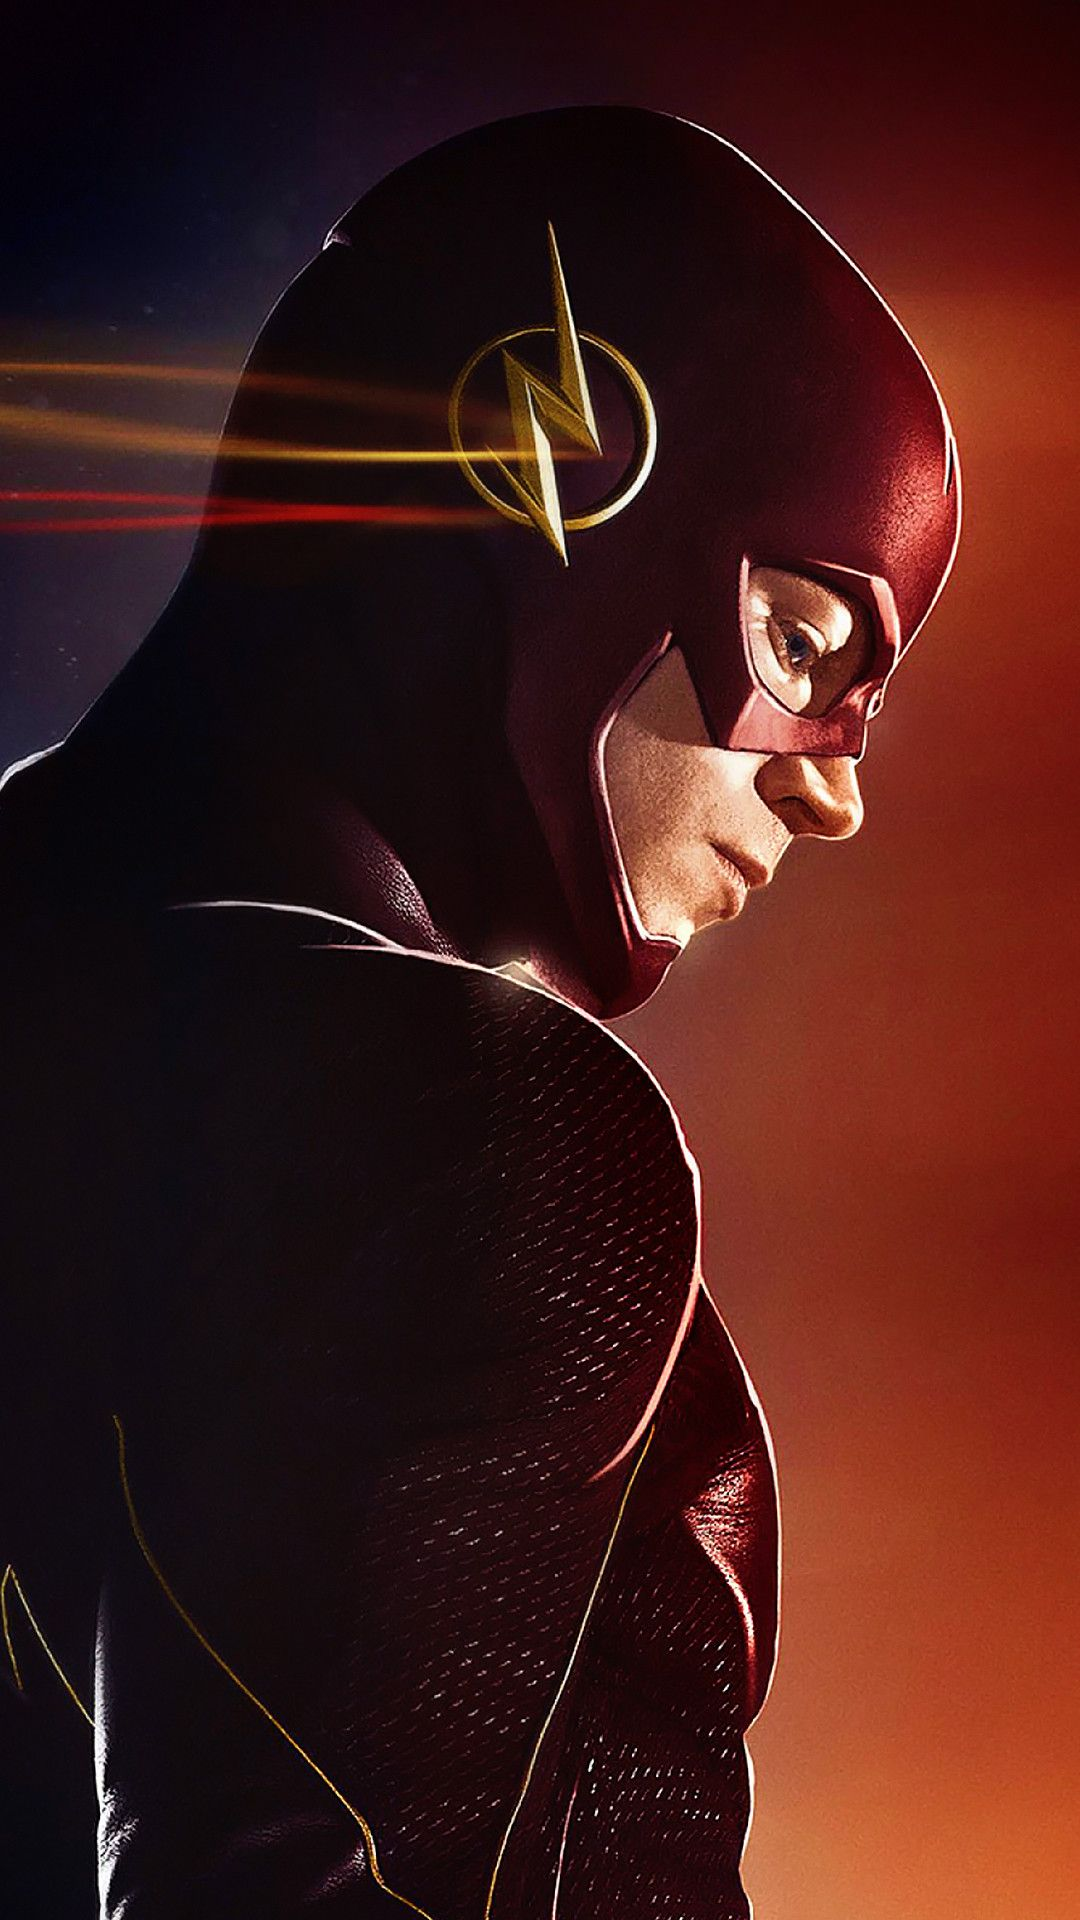 flash comic wallpaper, superhero flash